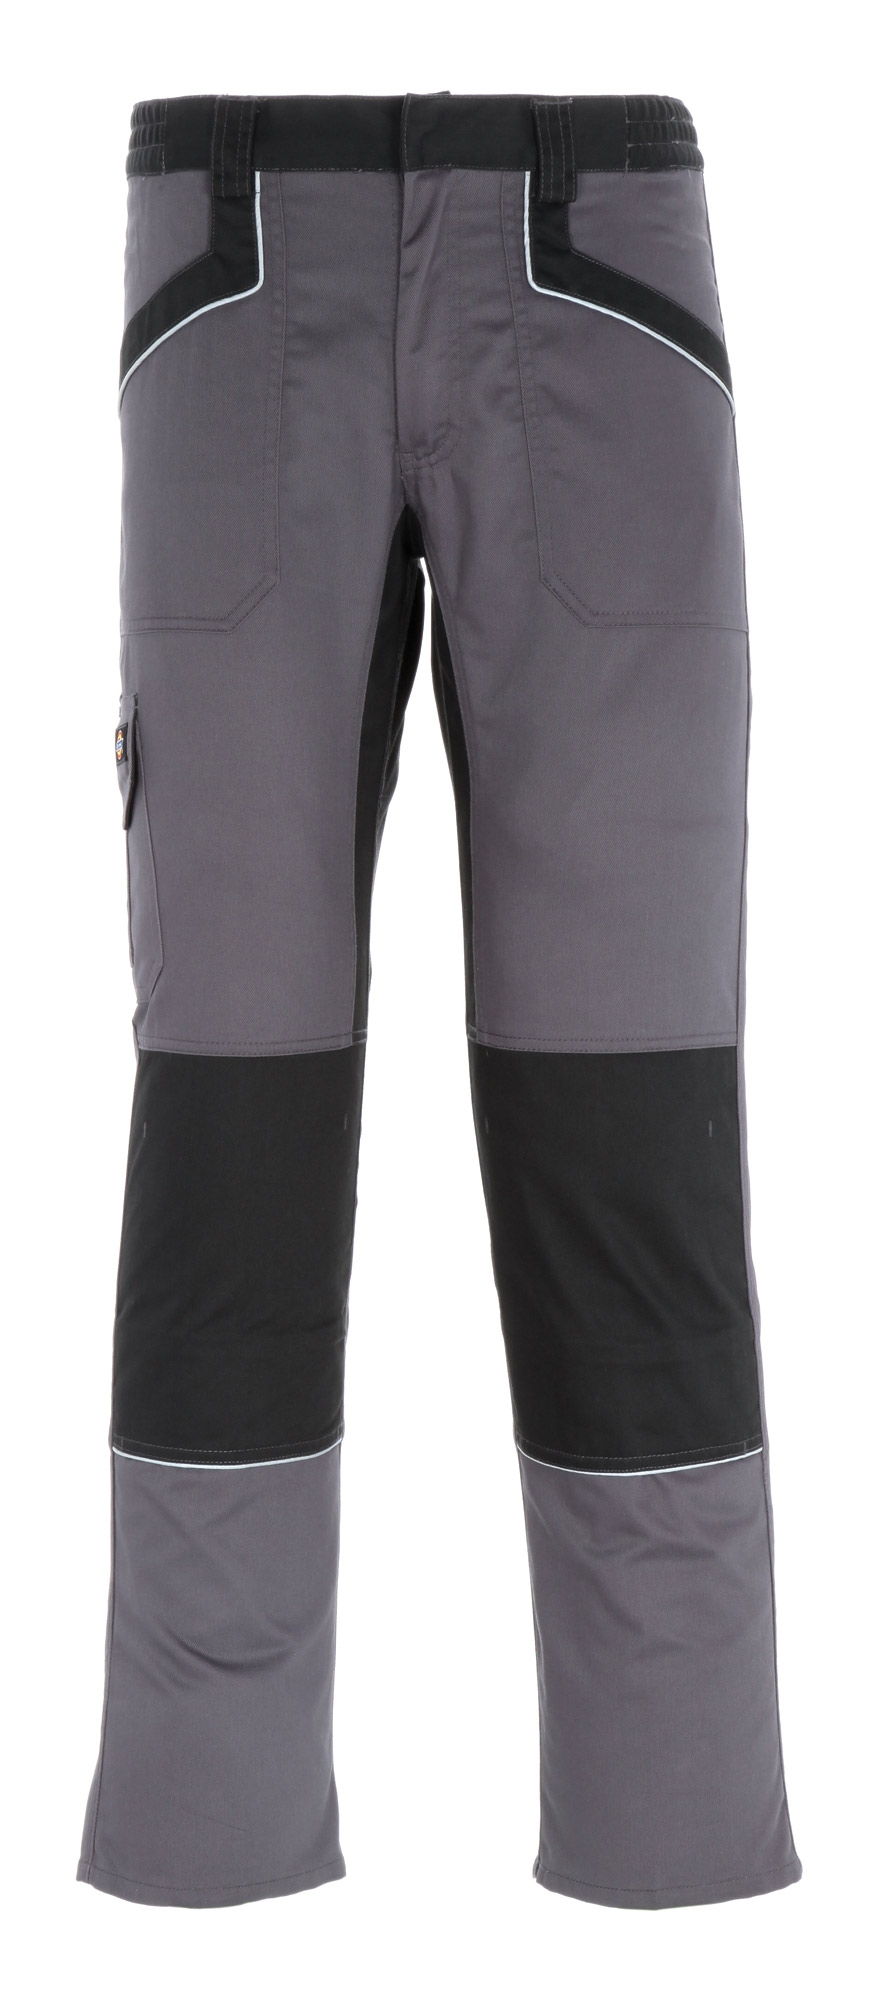 IND260 Trousers Grey/Black 48